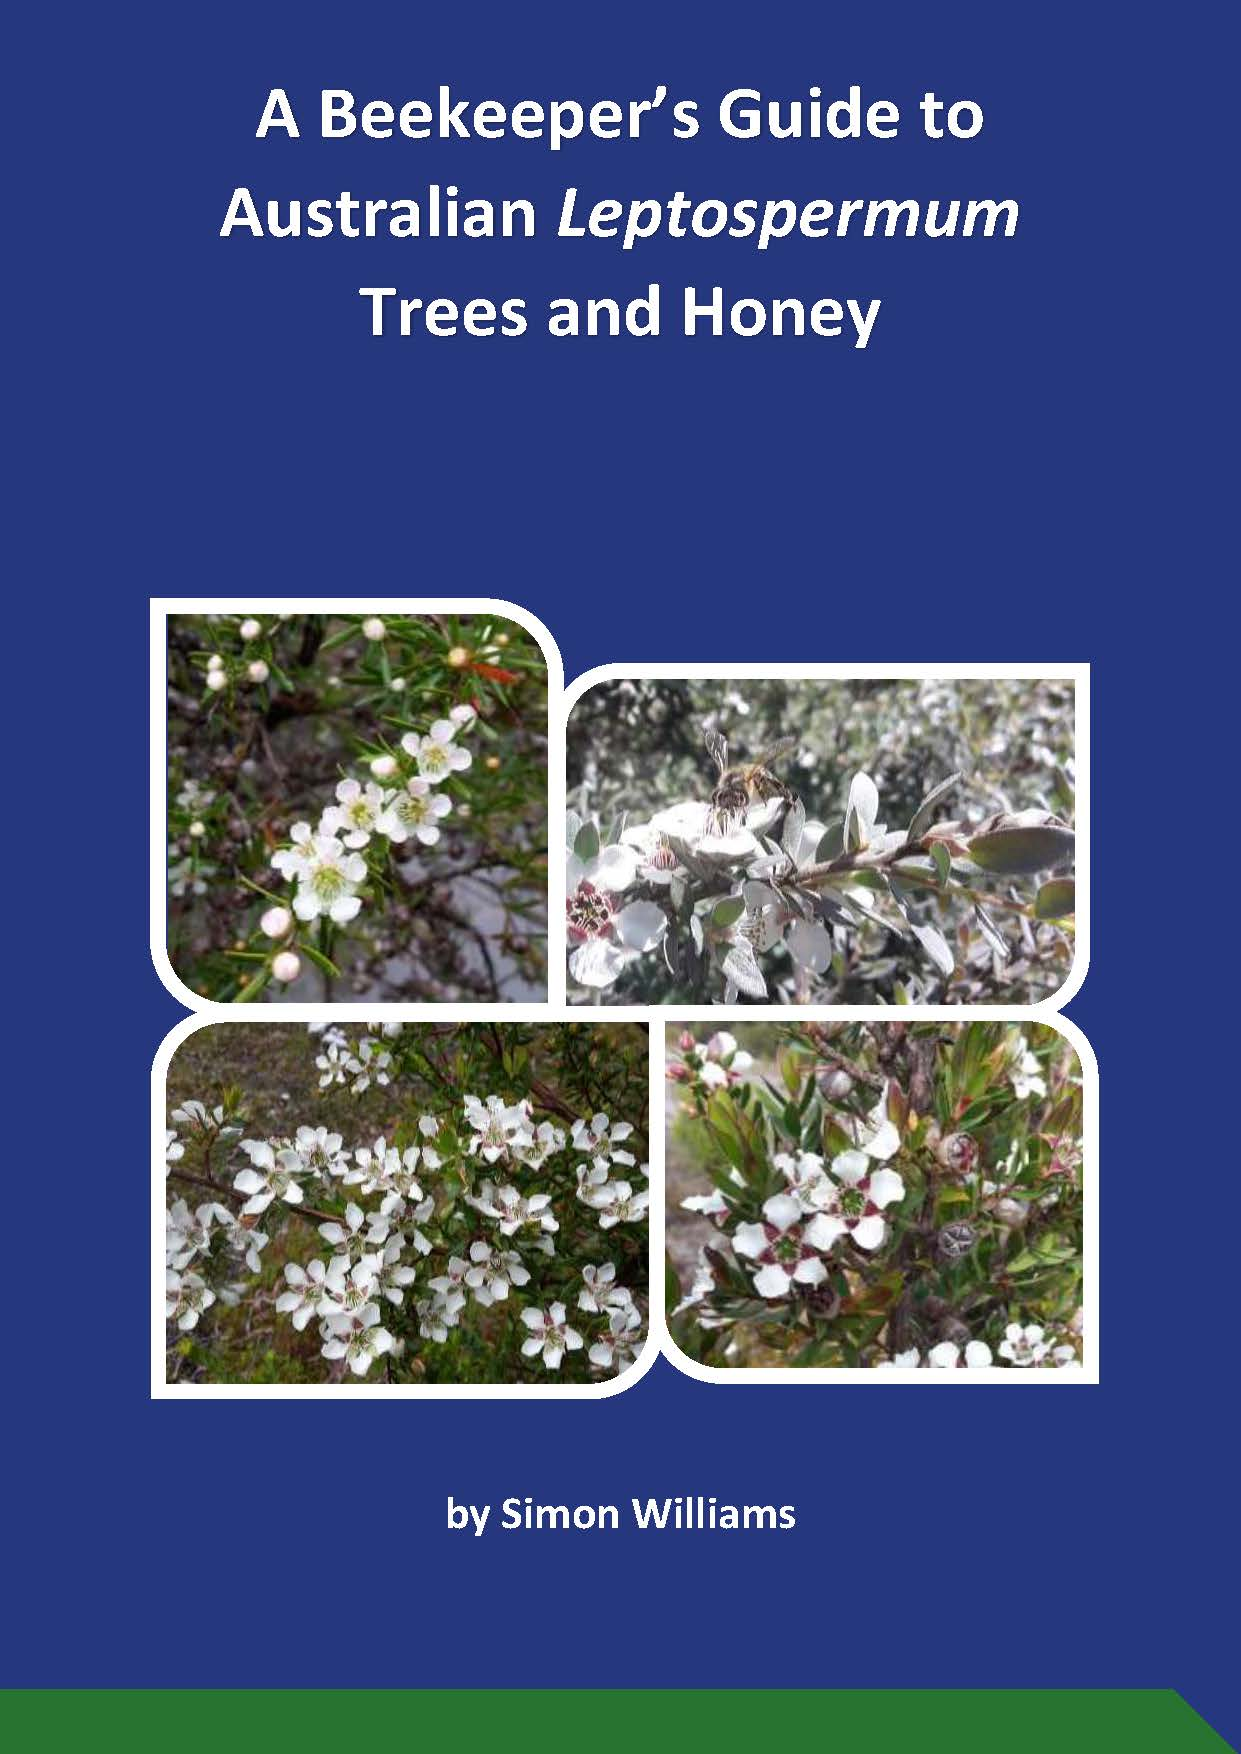 A Beekeeper's Guide to Australian Leptospermum Trees and Honey - image